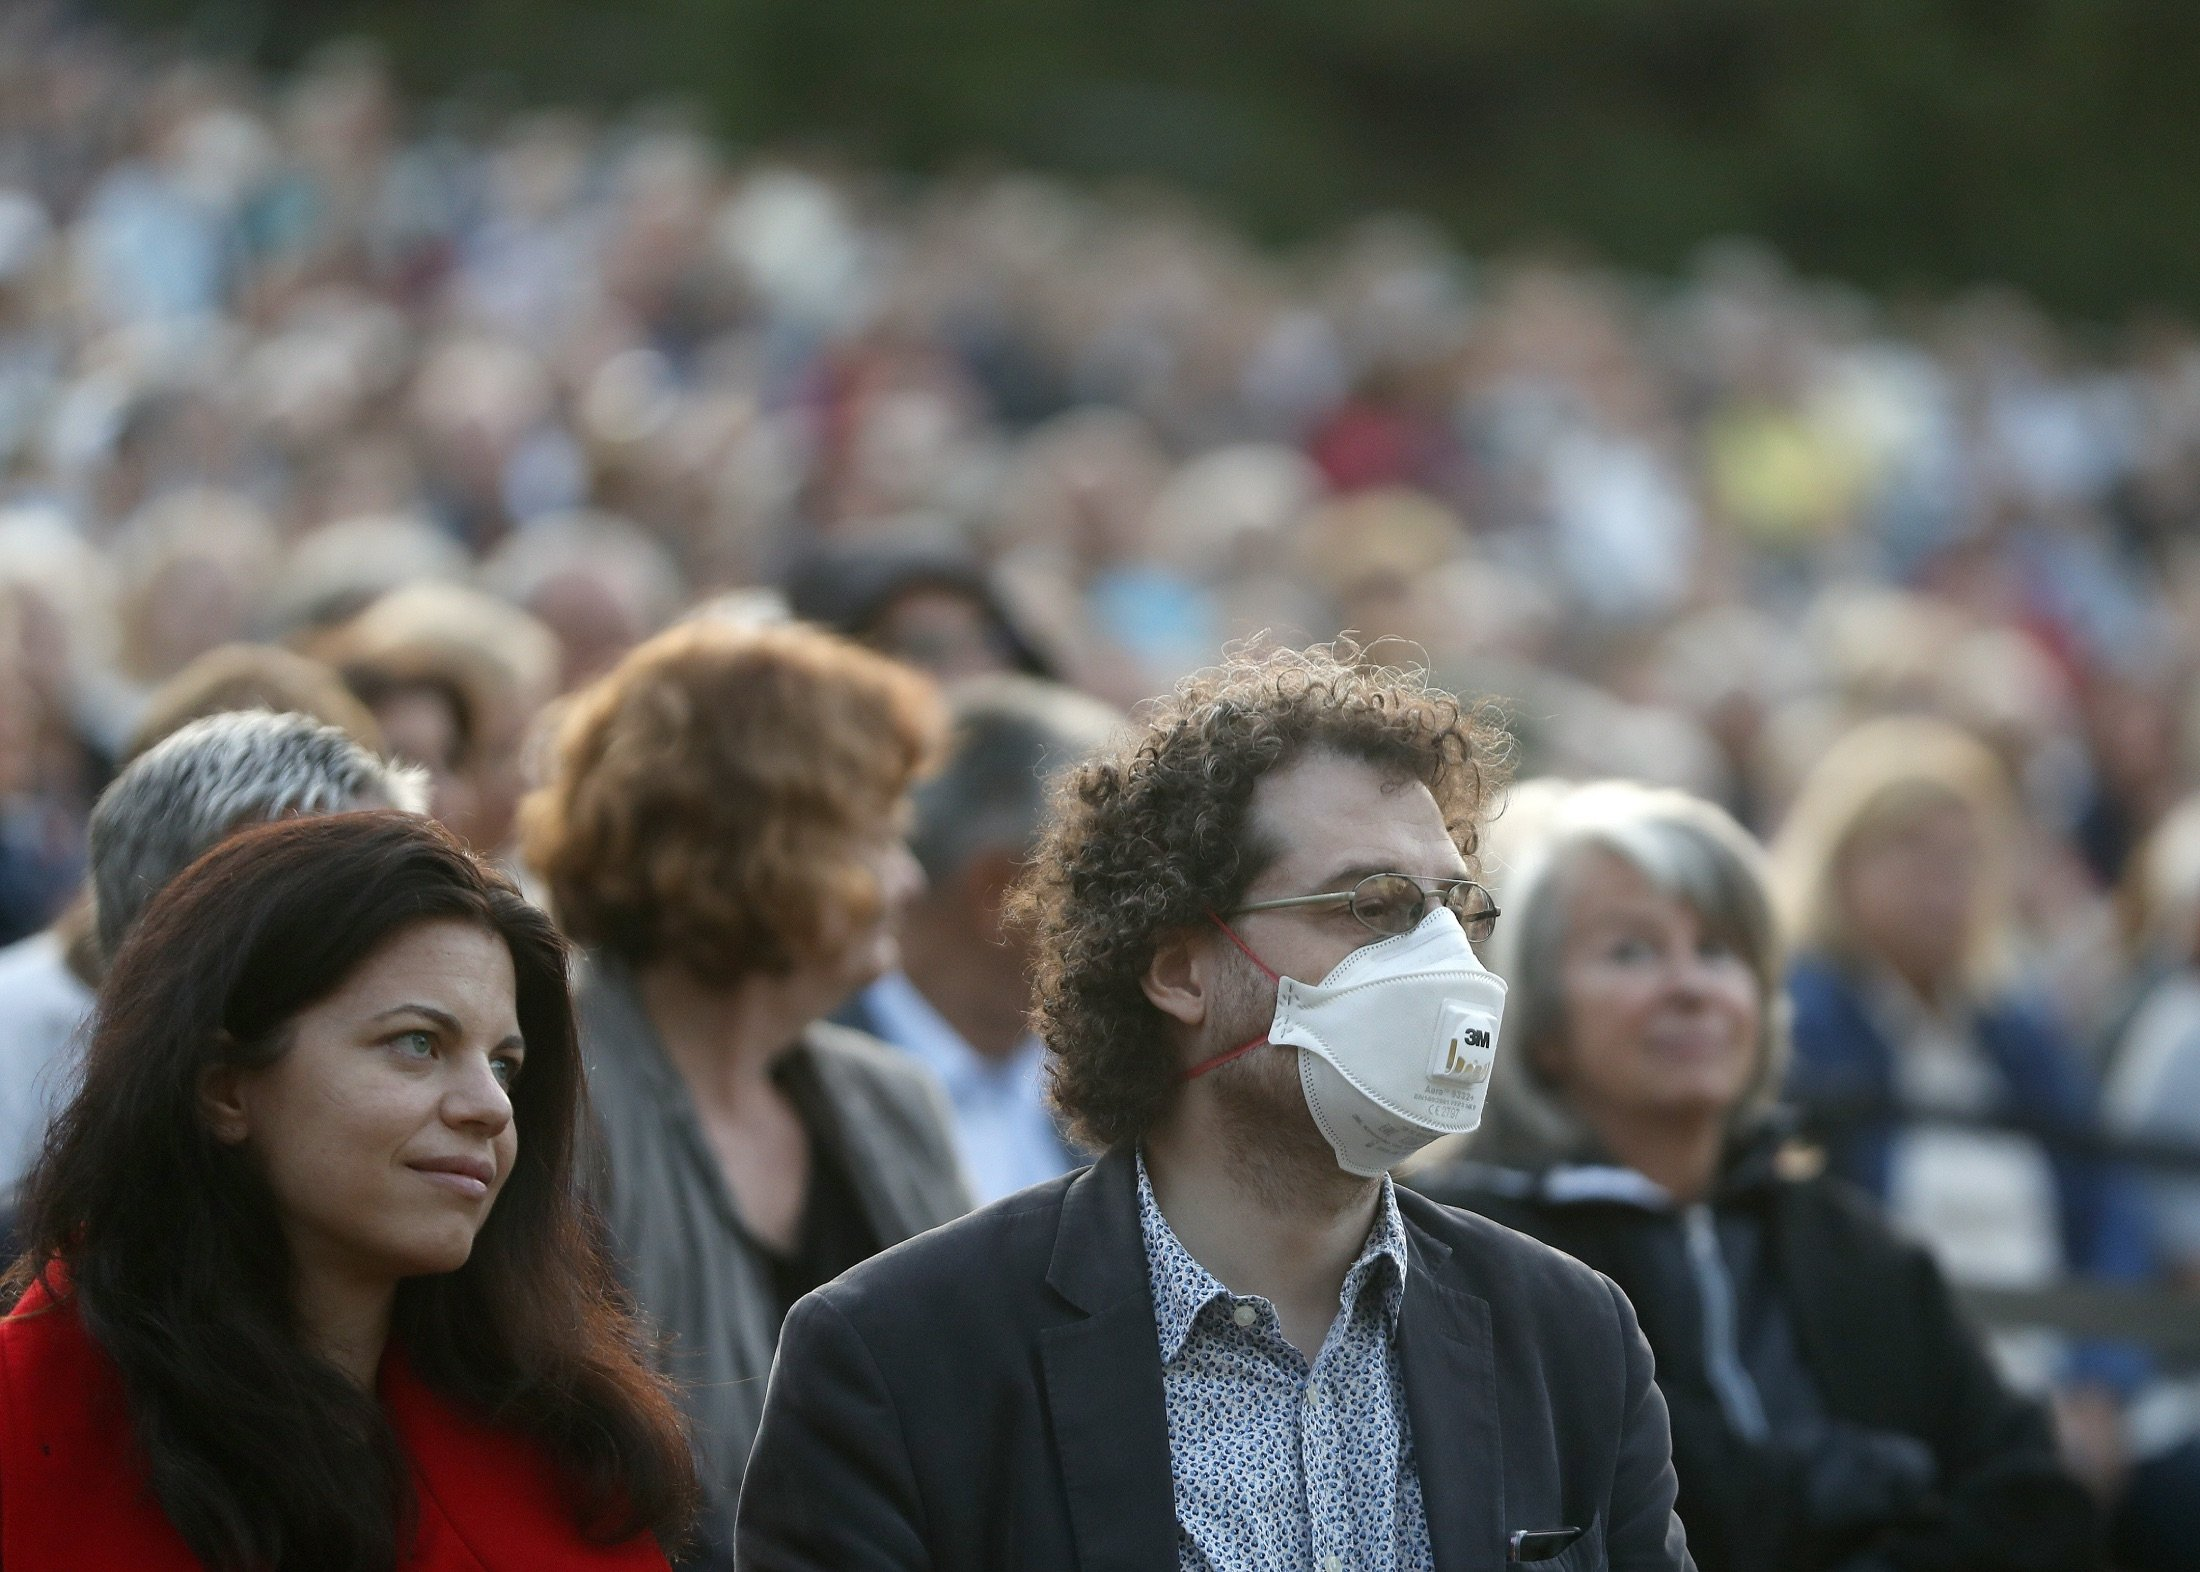 People attend a free concert of the Budapest Festival Orchestra in Budapest, Hungary, Aug. 25, 2021. (AP Photo)